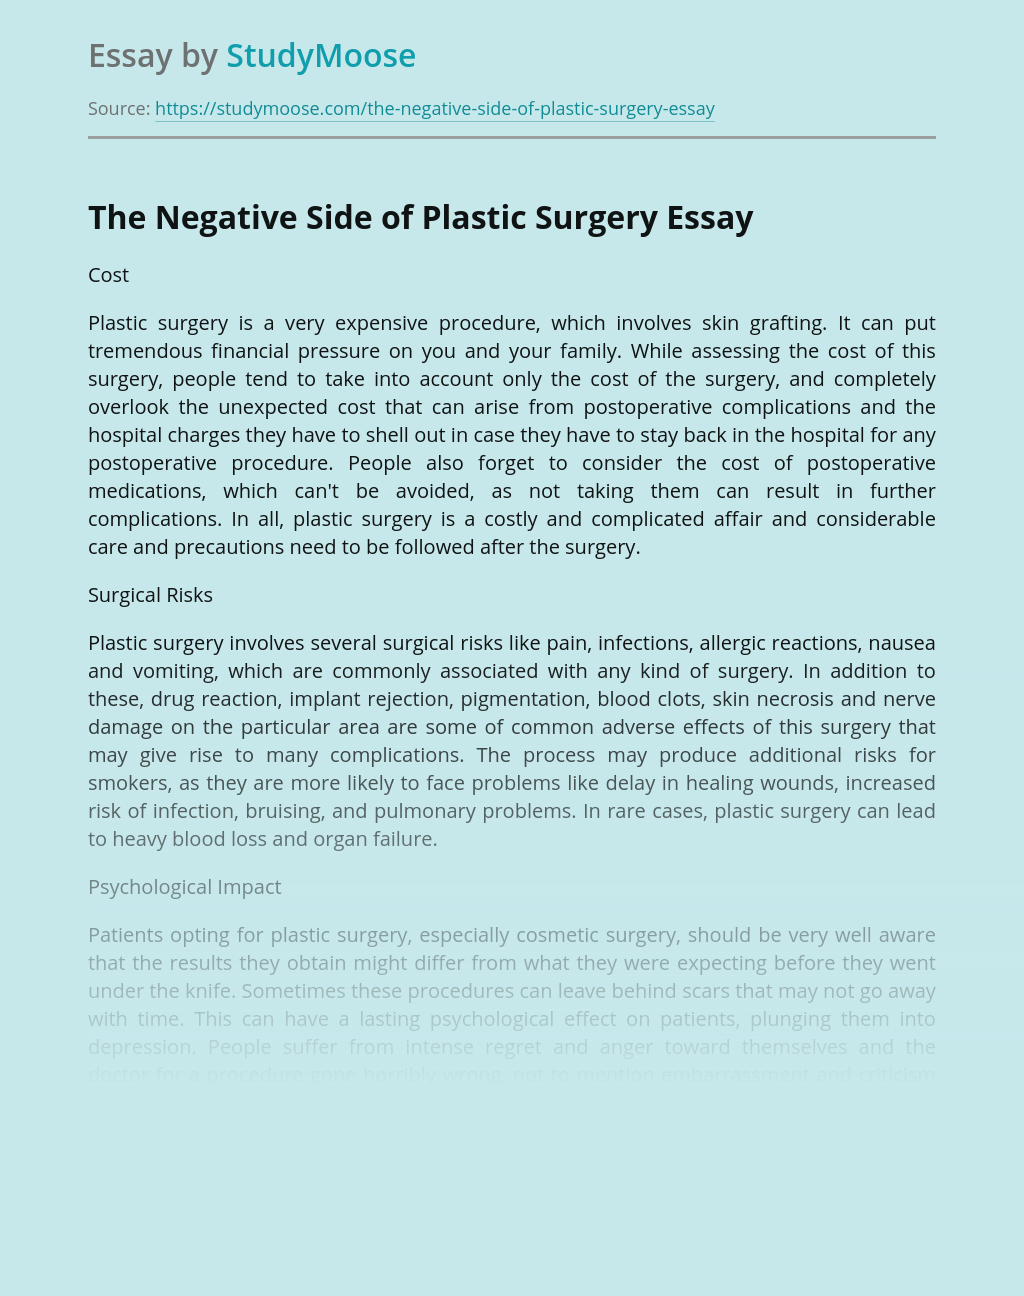 The Negative Side of Plastic Surgery